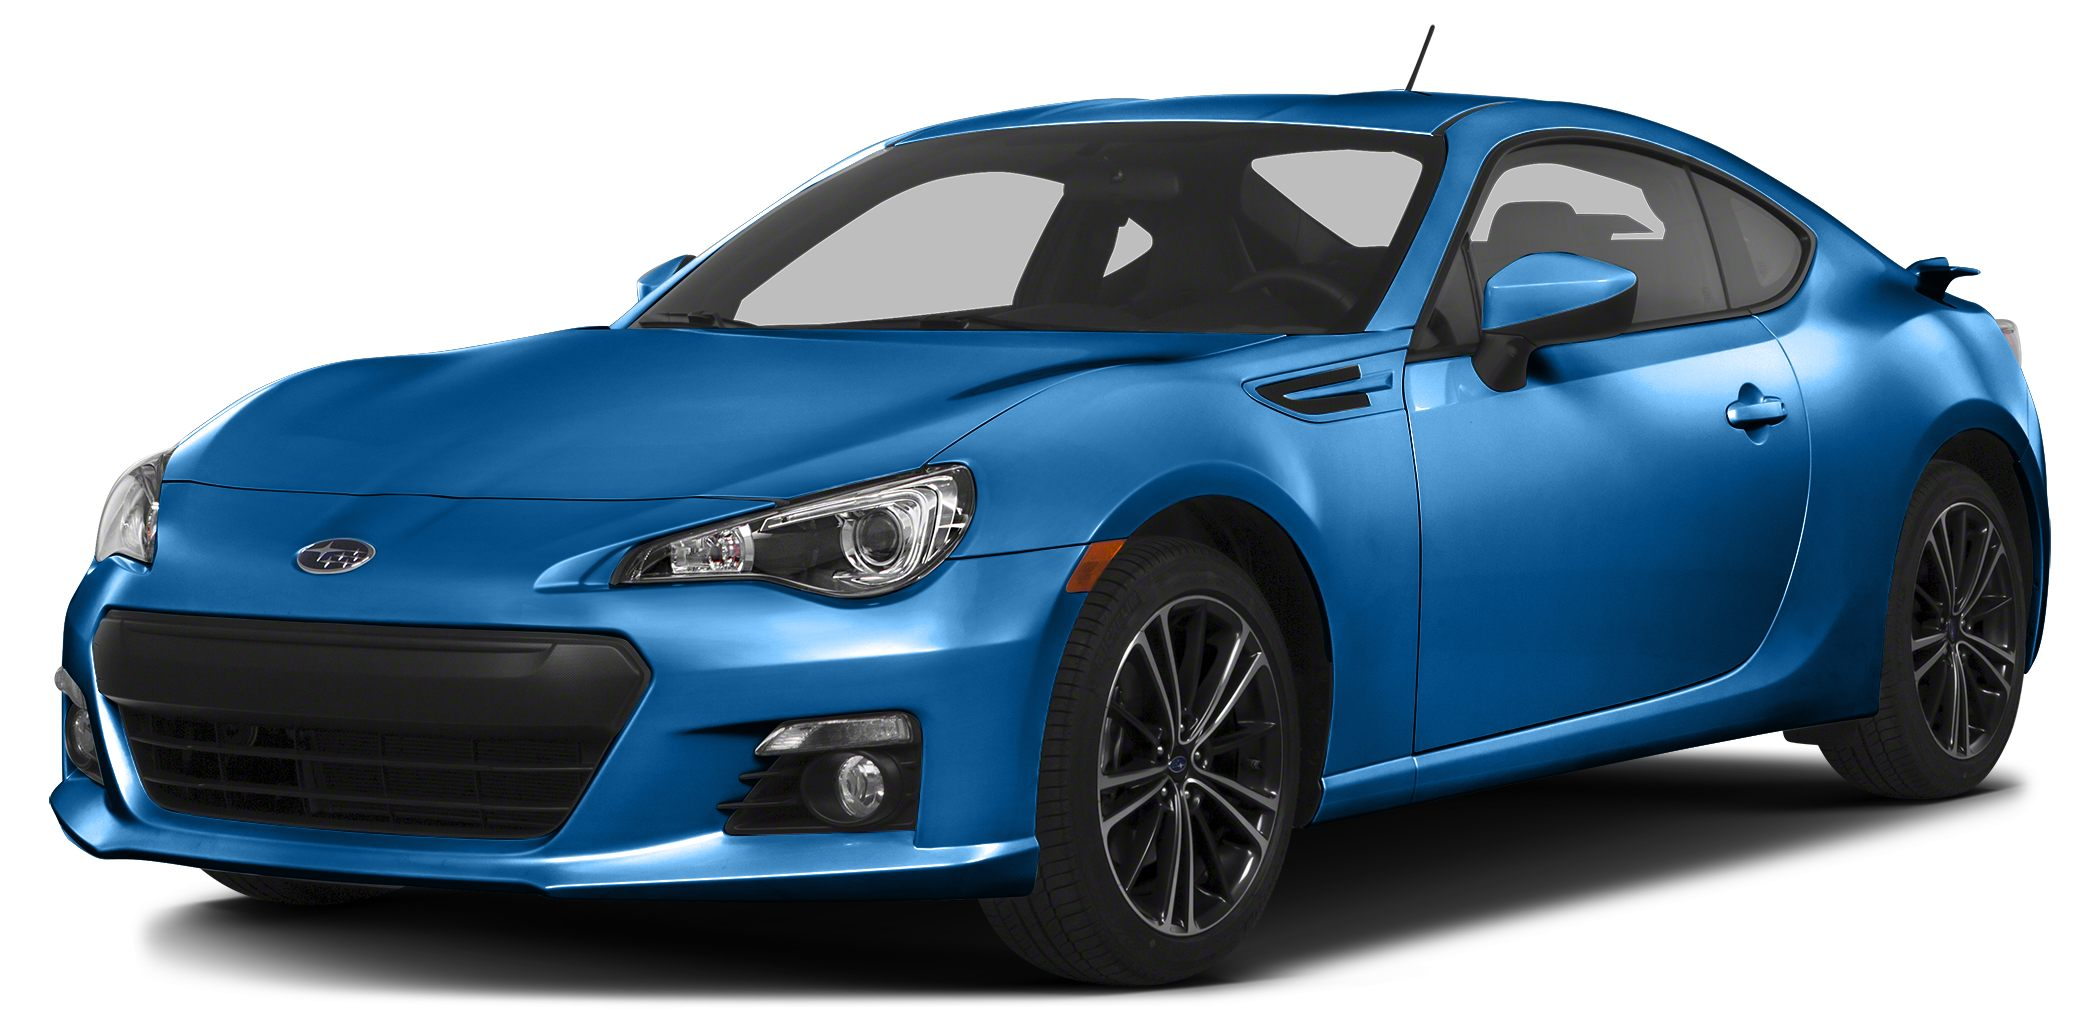 2015 Subaru BRZ Limited FALL INTO SAVINGS EVENT HAPPENING NOW New Arrival- Low Miles-Exceptional